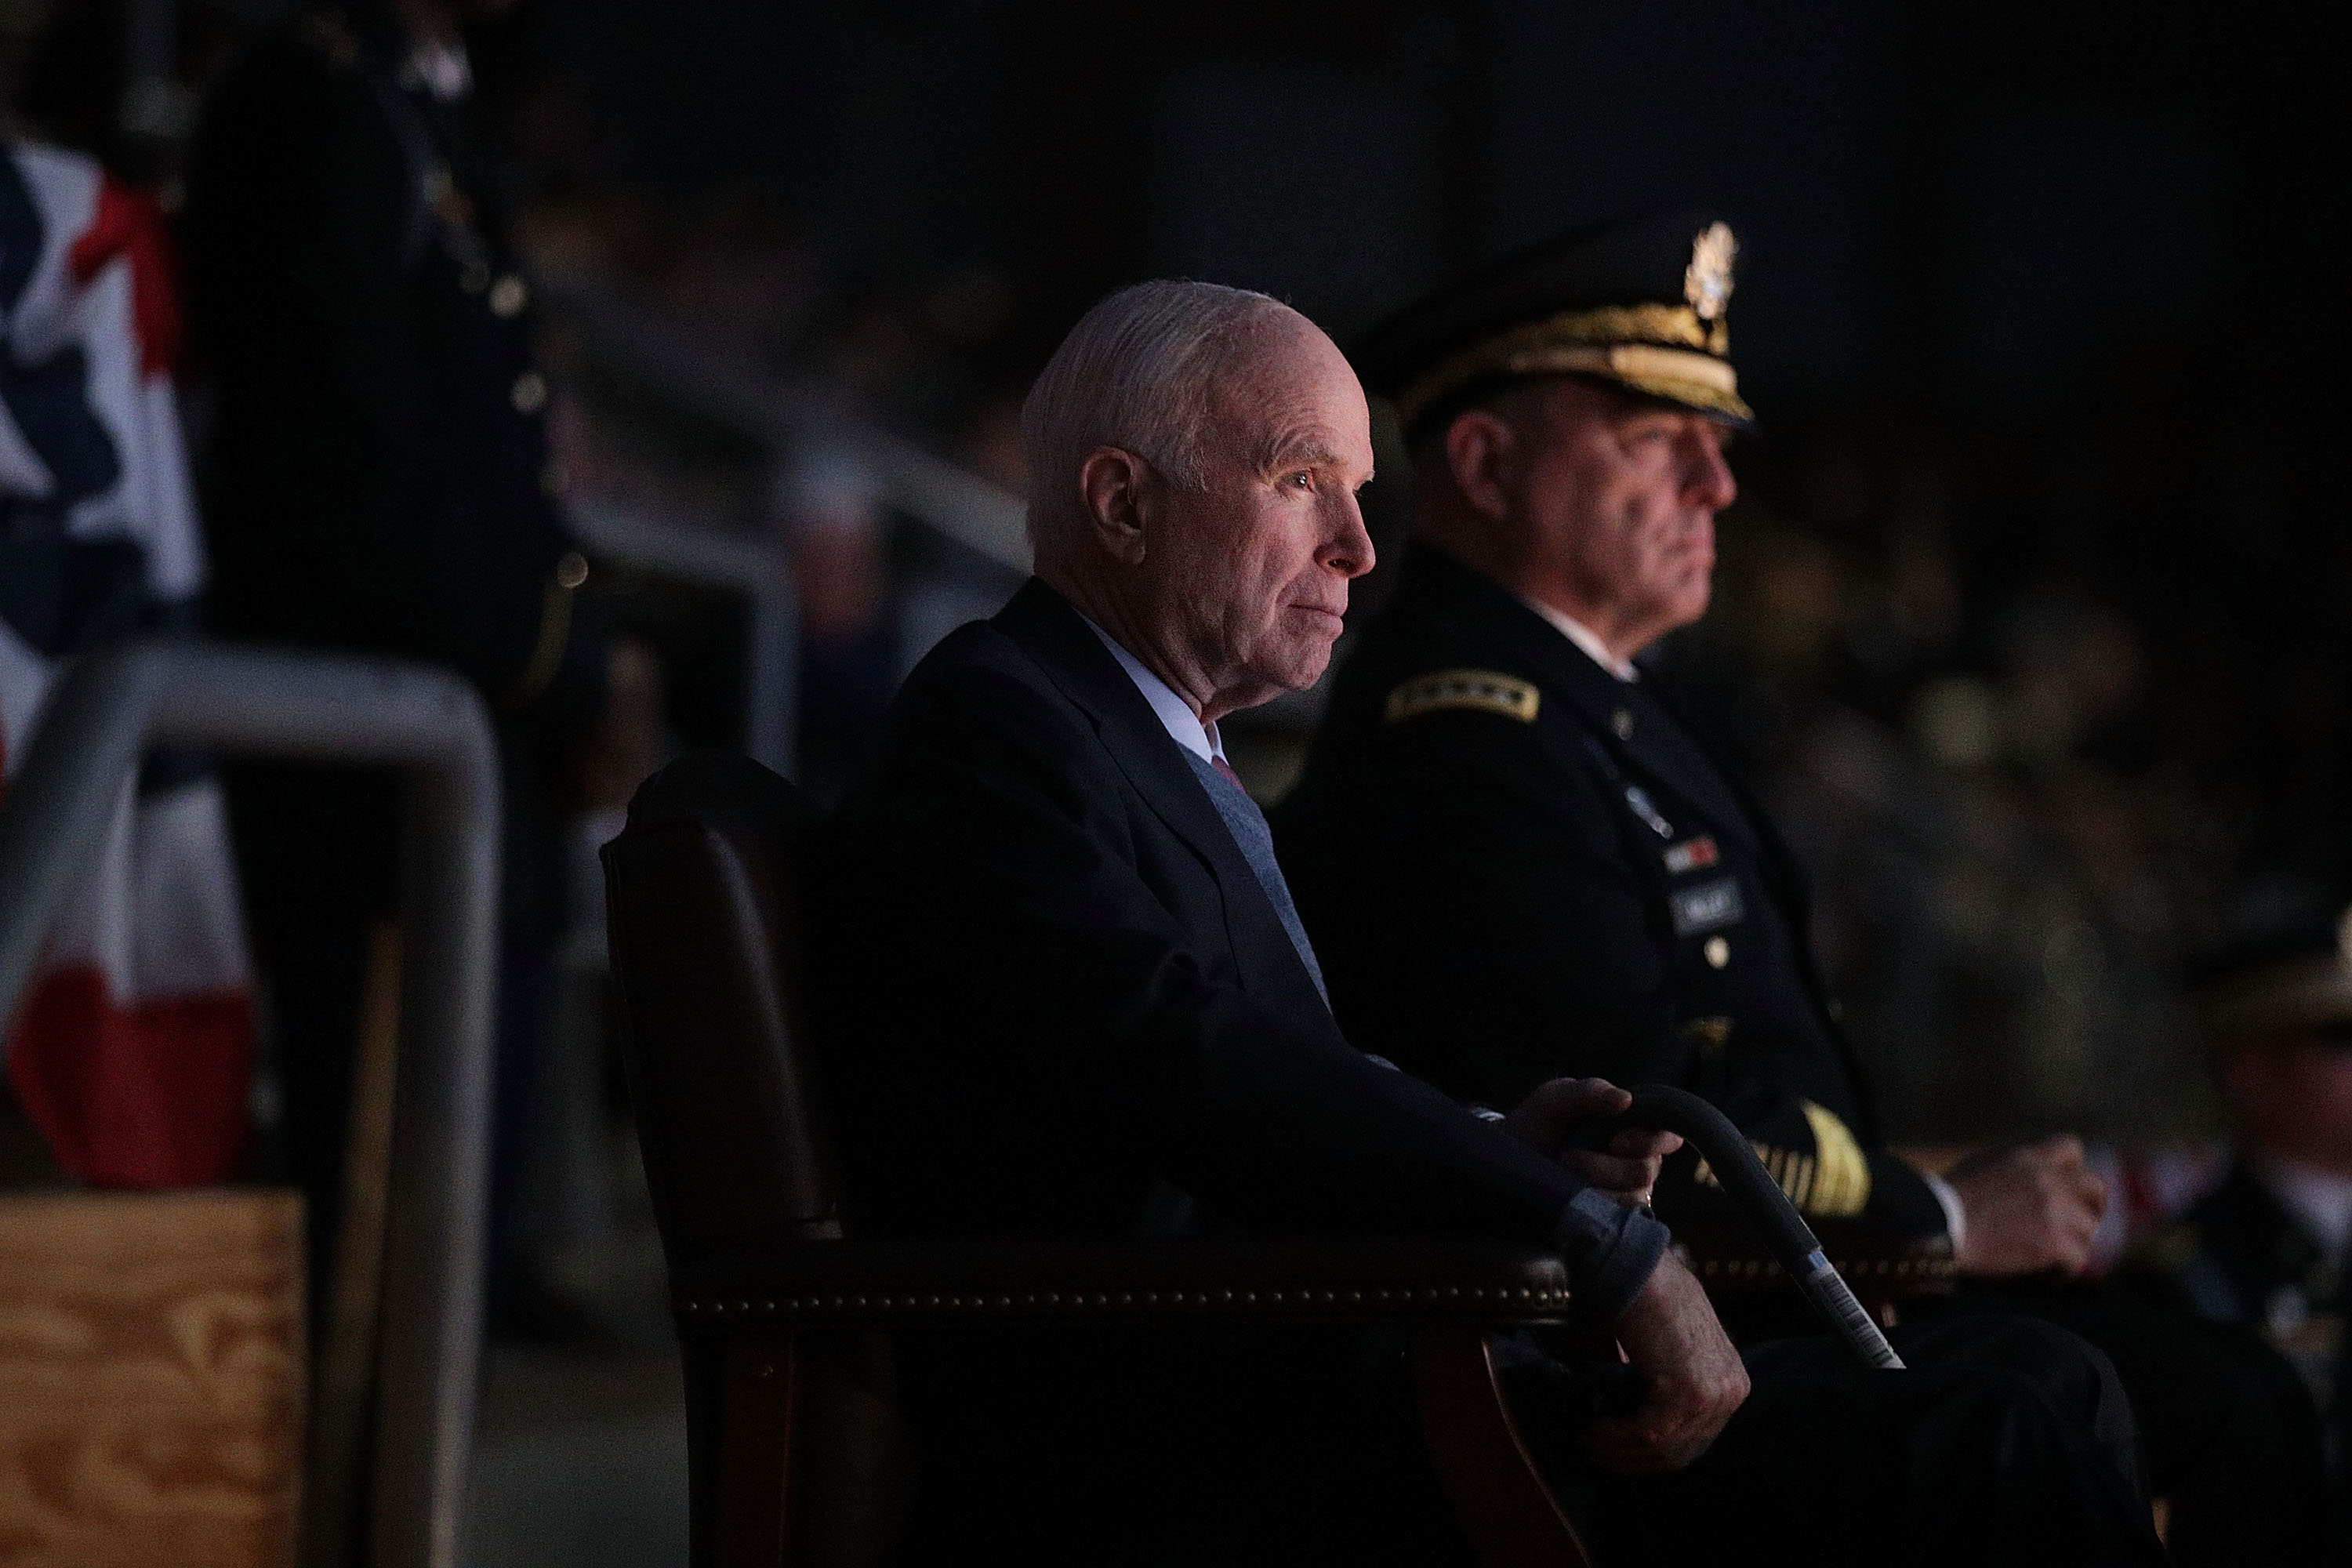 ARLINGTON, VA - NOVEMBER 14: U.S. Army Chief of Staff Gen. Mark A. Milley (R) and Sen. John McCain (R-AZ) (L) watch a special Twilight Tattoo performance November 14, 2017 at Fort Myer in Arlington, Virginia. Sen. McCain was honored with the Outstanding Civilian Service Medal for over 63 years of dedicated service to the nation and the U.S. Navy. (Photo by Alex Wong/Getty Images)